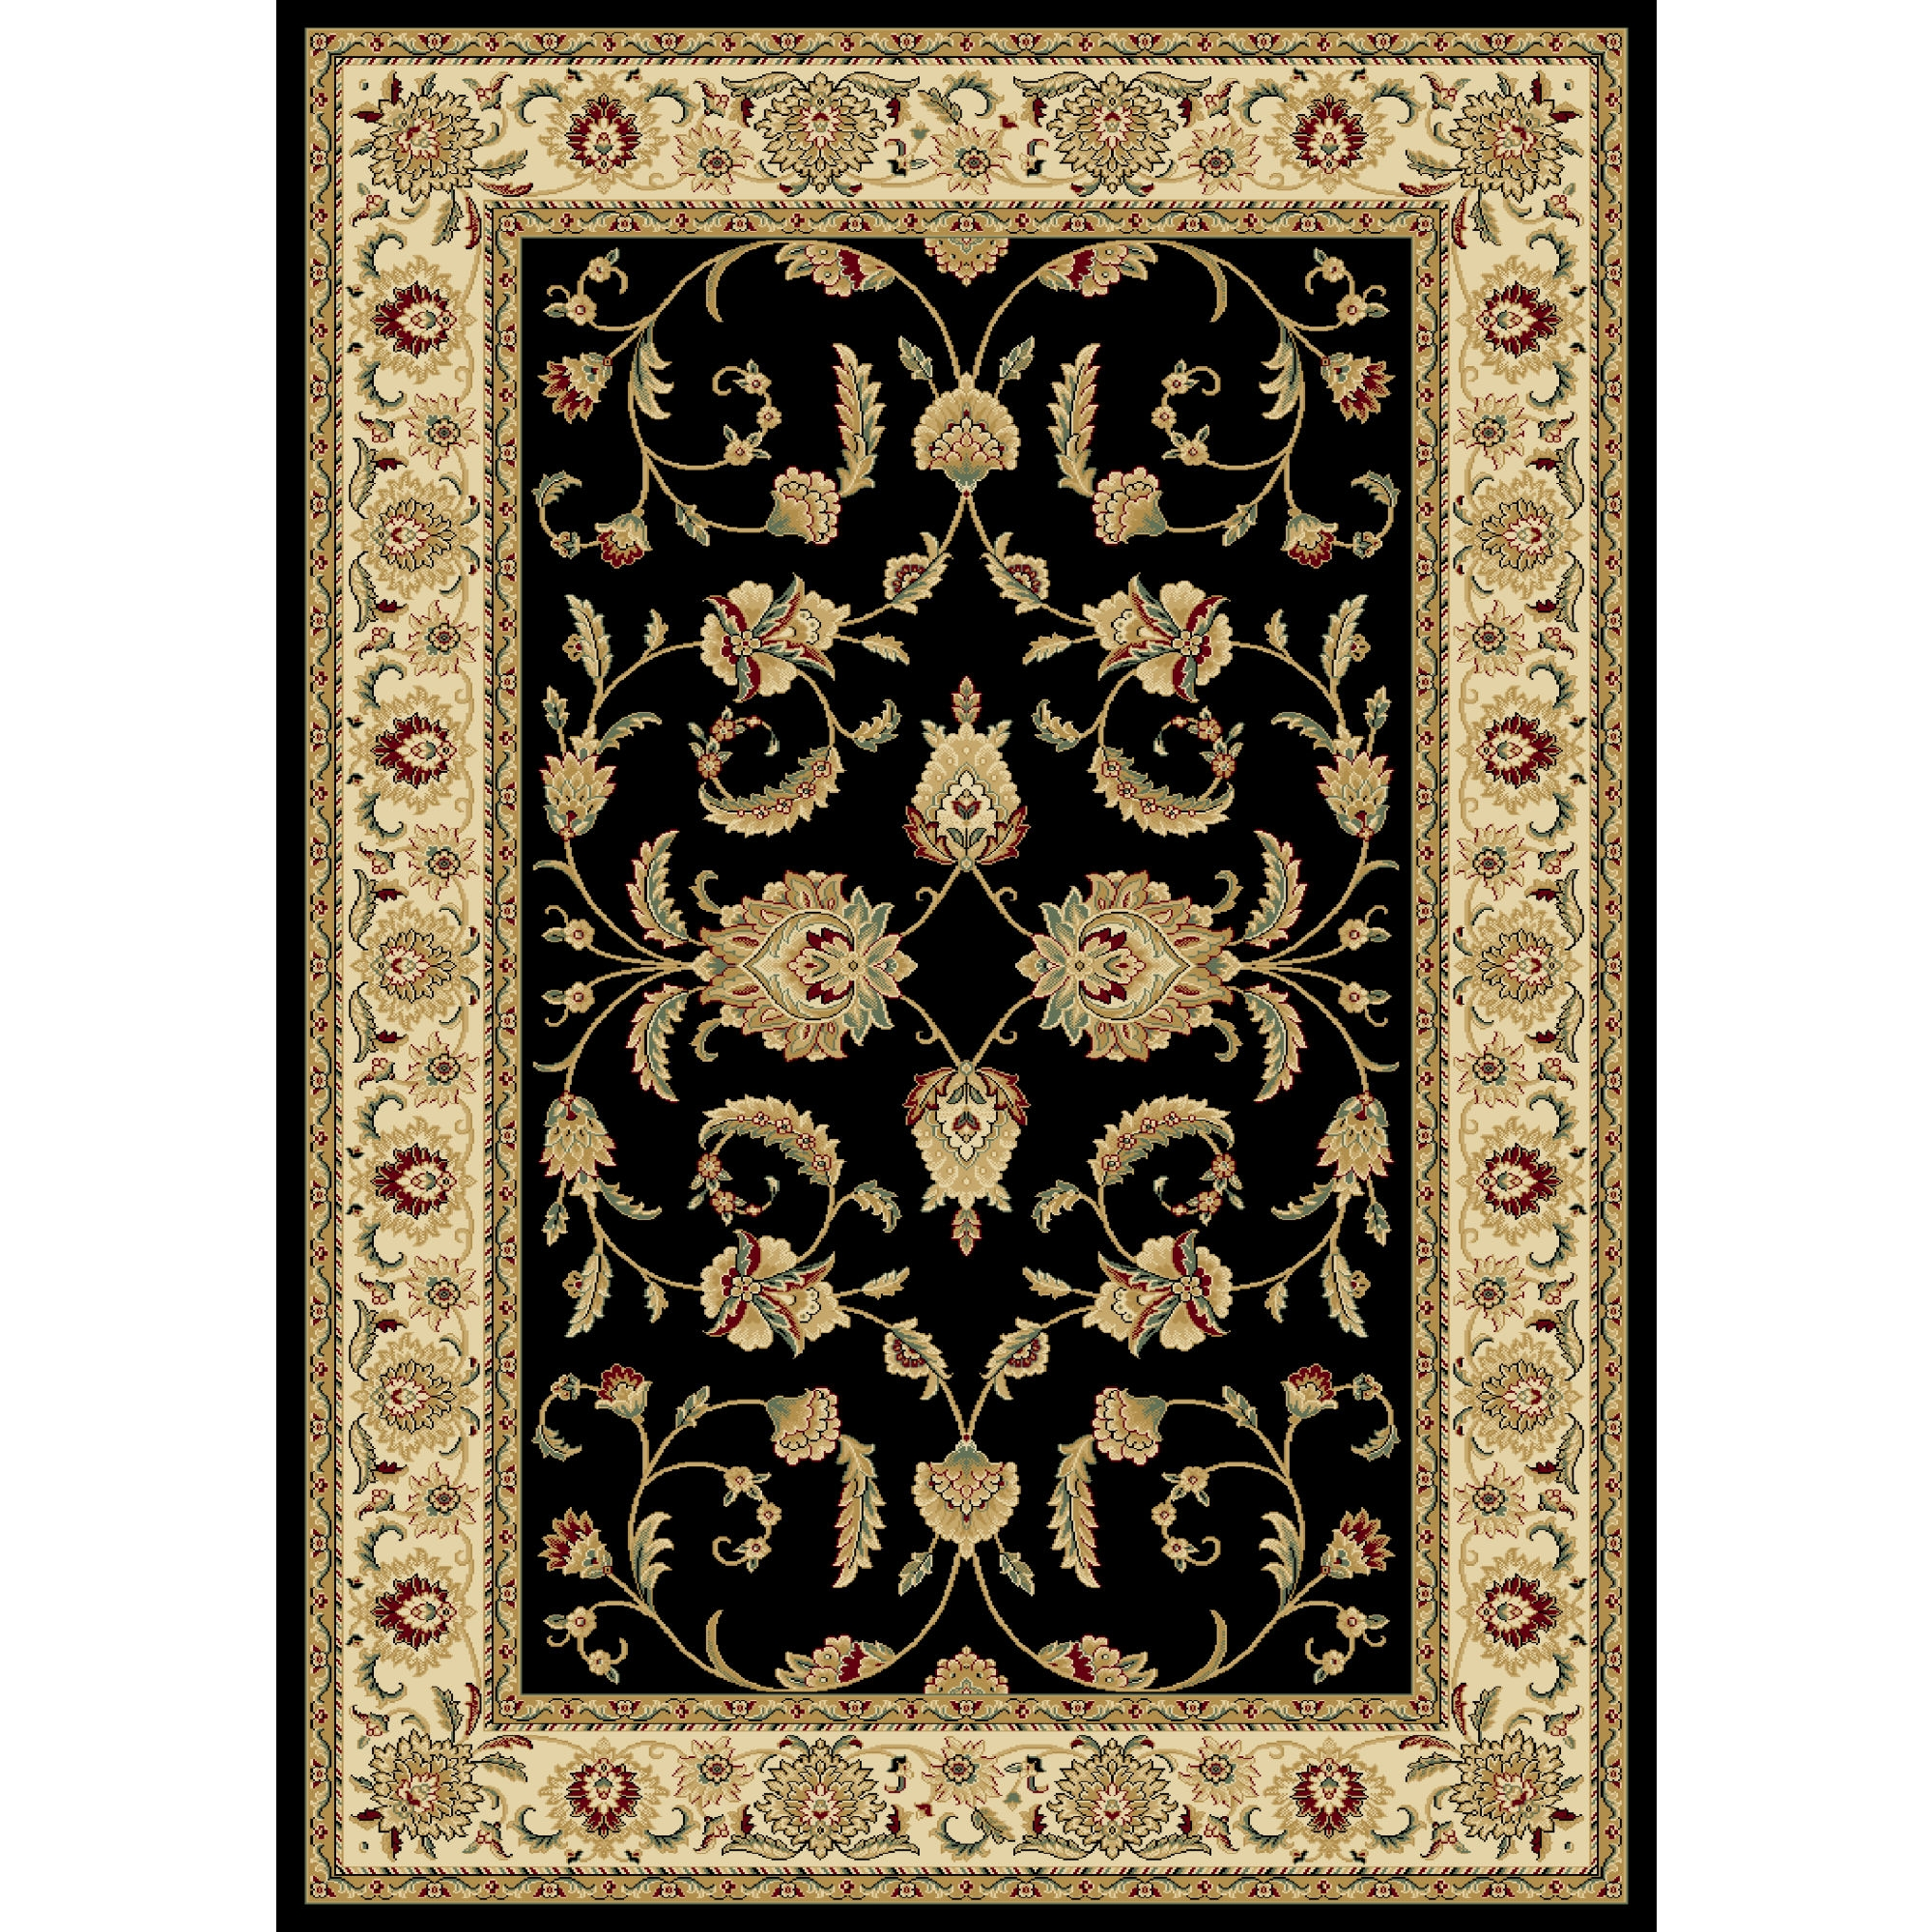 Black Persian Rug Roselawnlutheran Intended For Oriental Persian Rugs (Image 5 of 15)